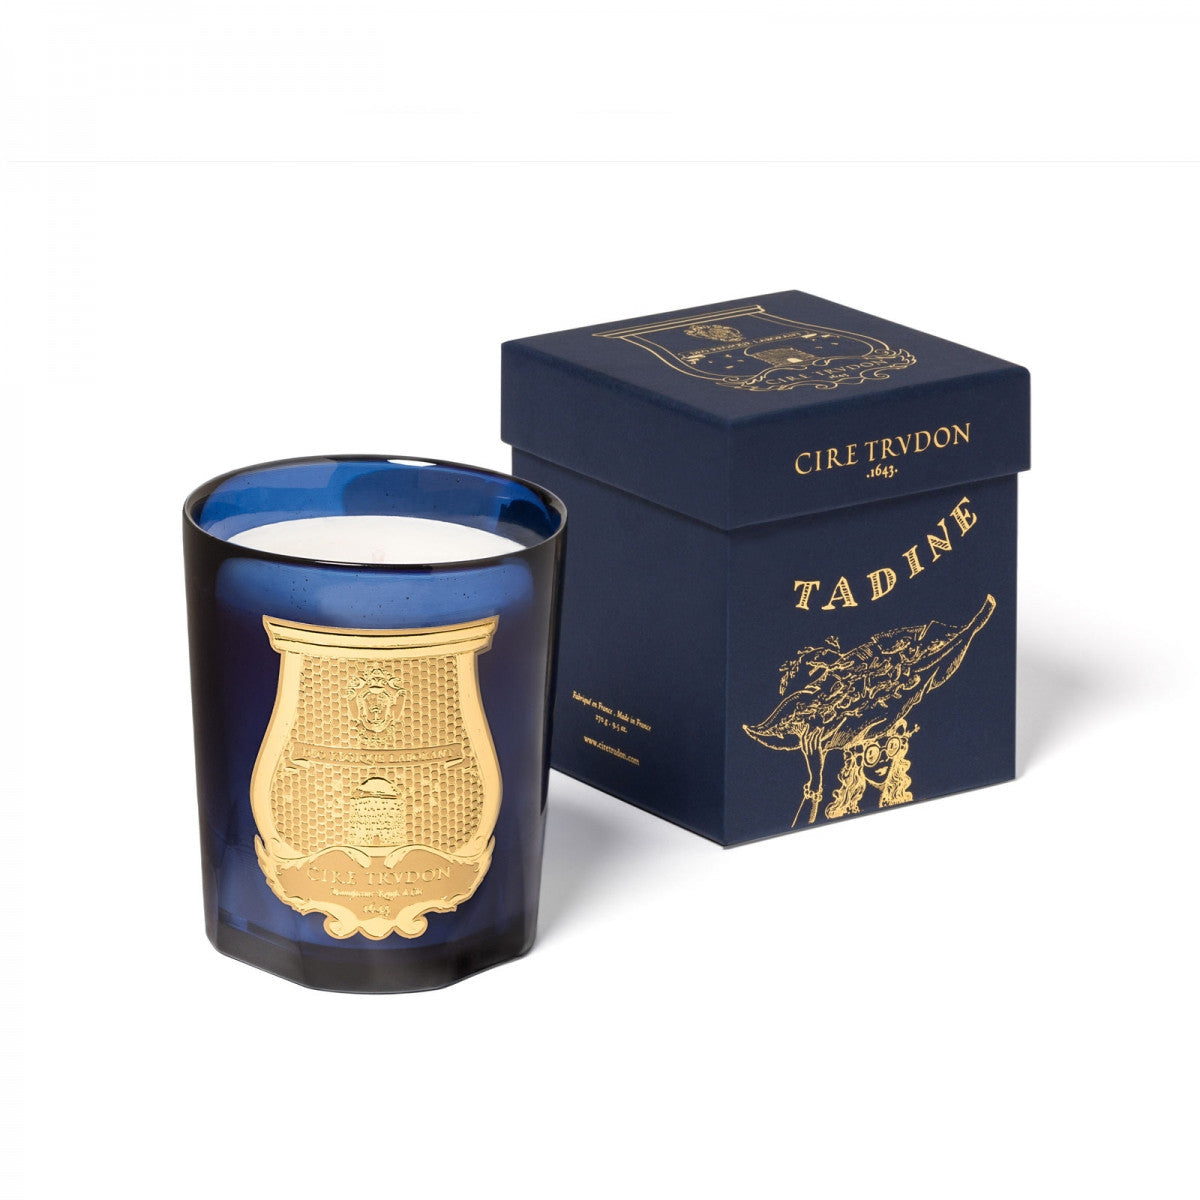 Cire Trudon Tadine Limited Edition Candle 270g